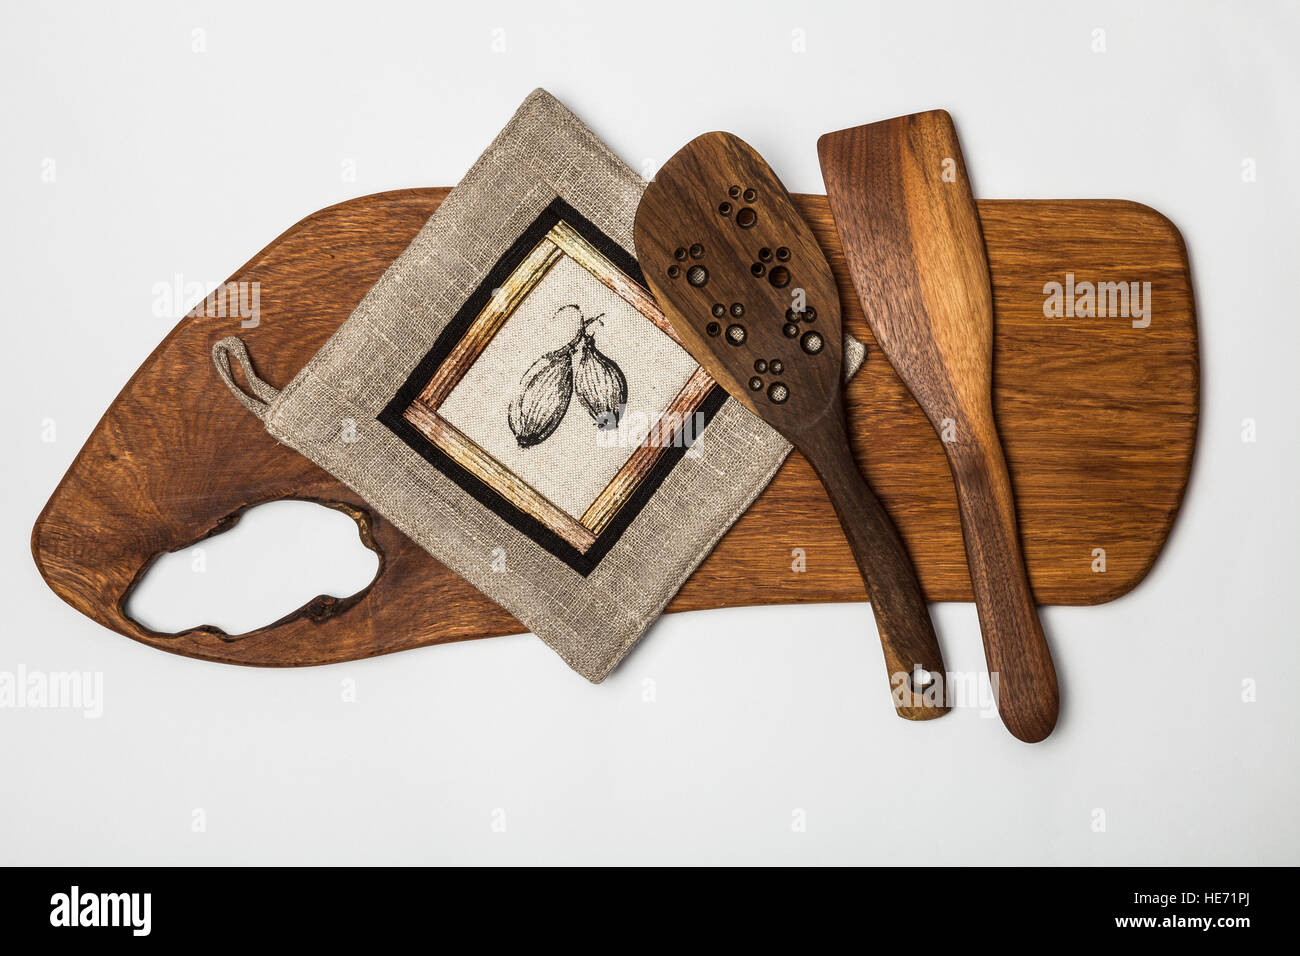 Kitchen equipment - wooden cutting table,tools and linen patchwork potholder. - Stock Image